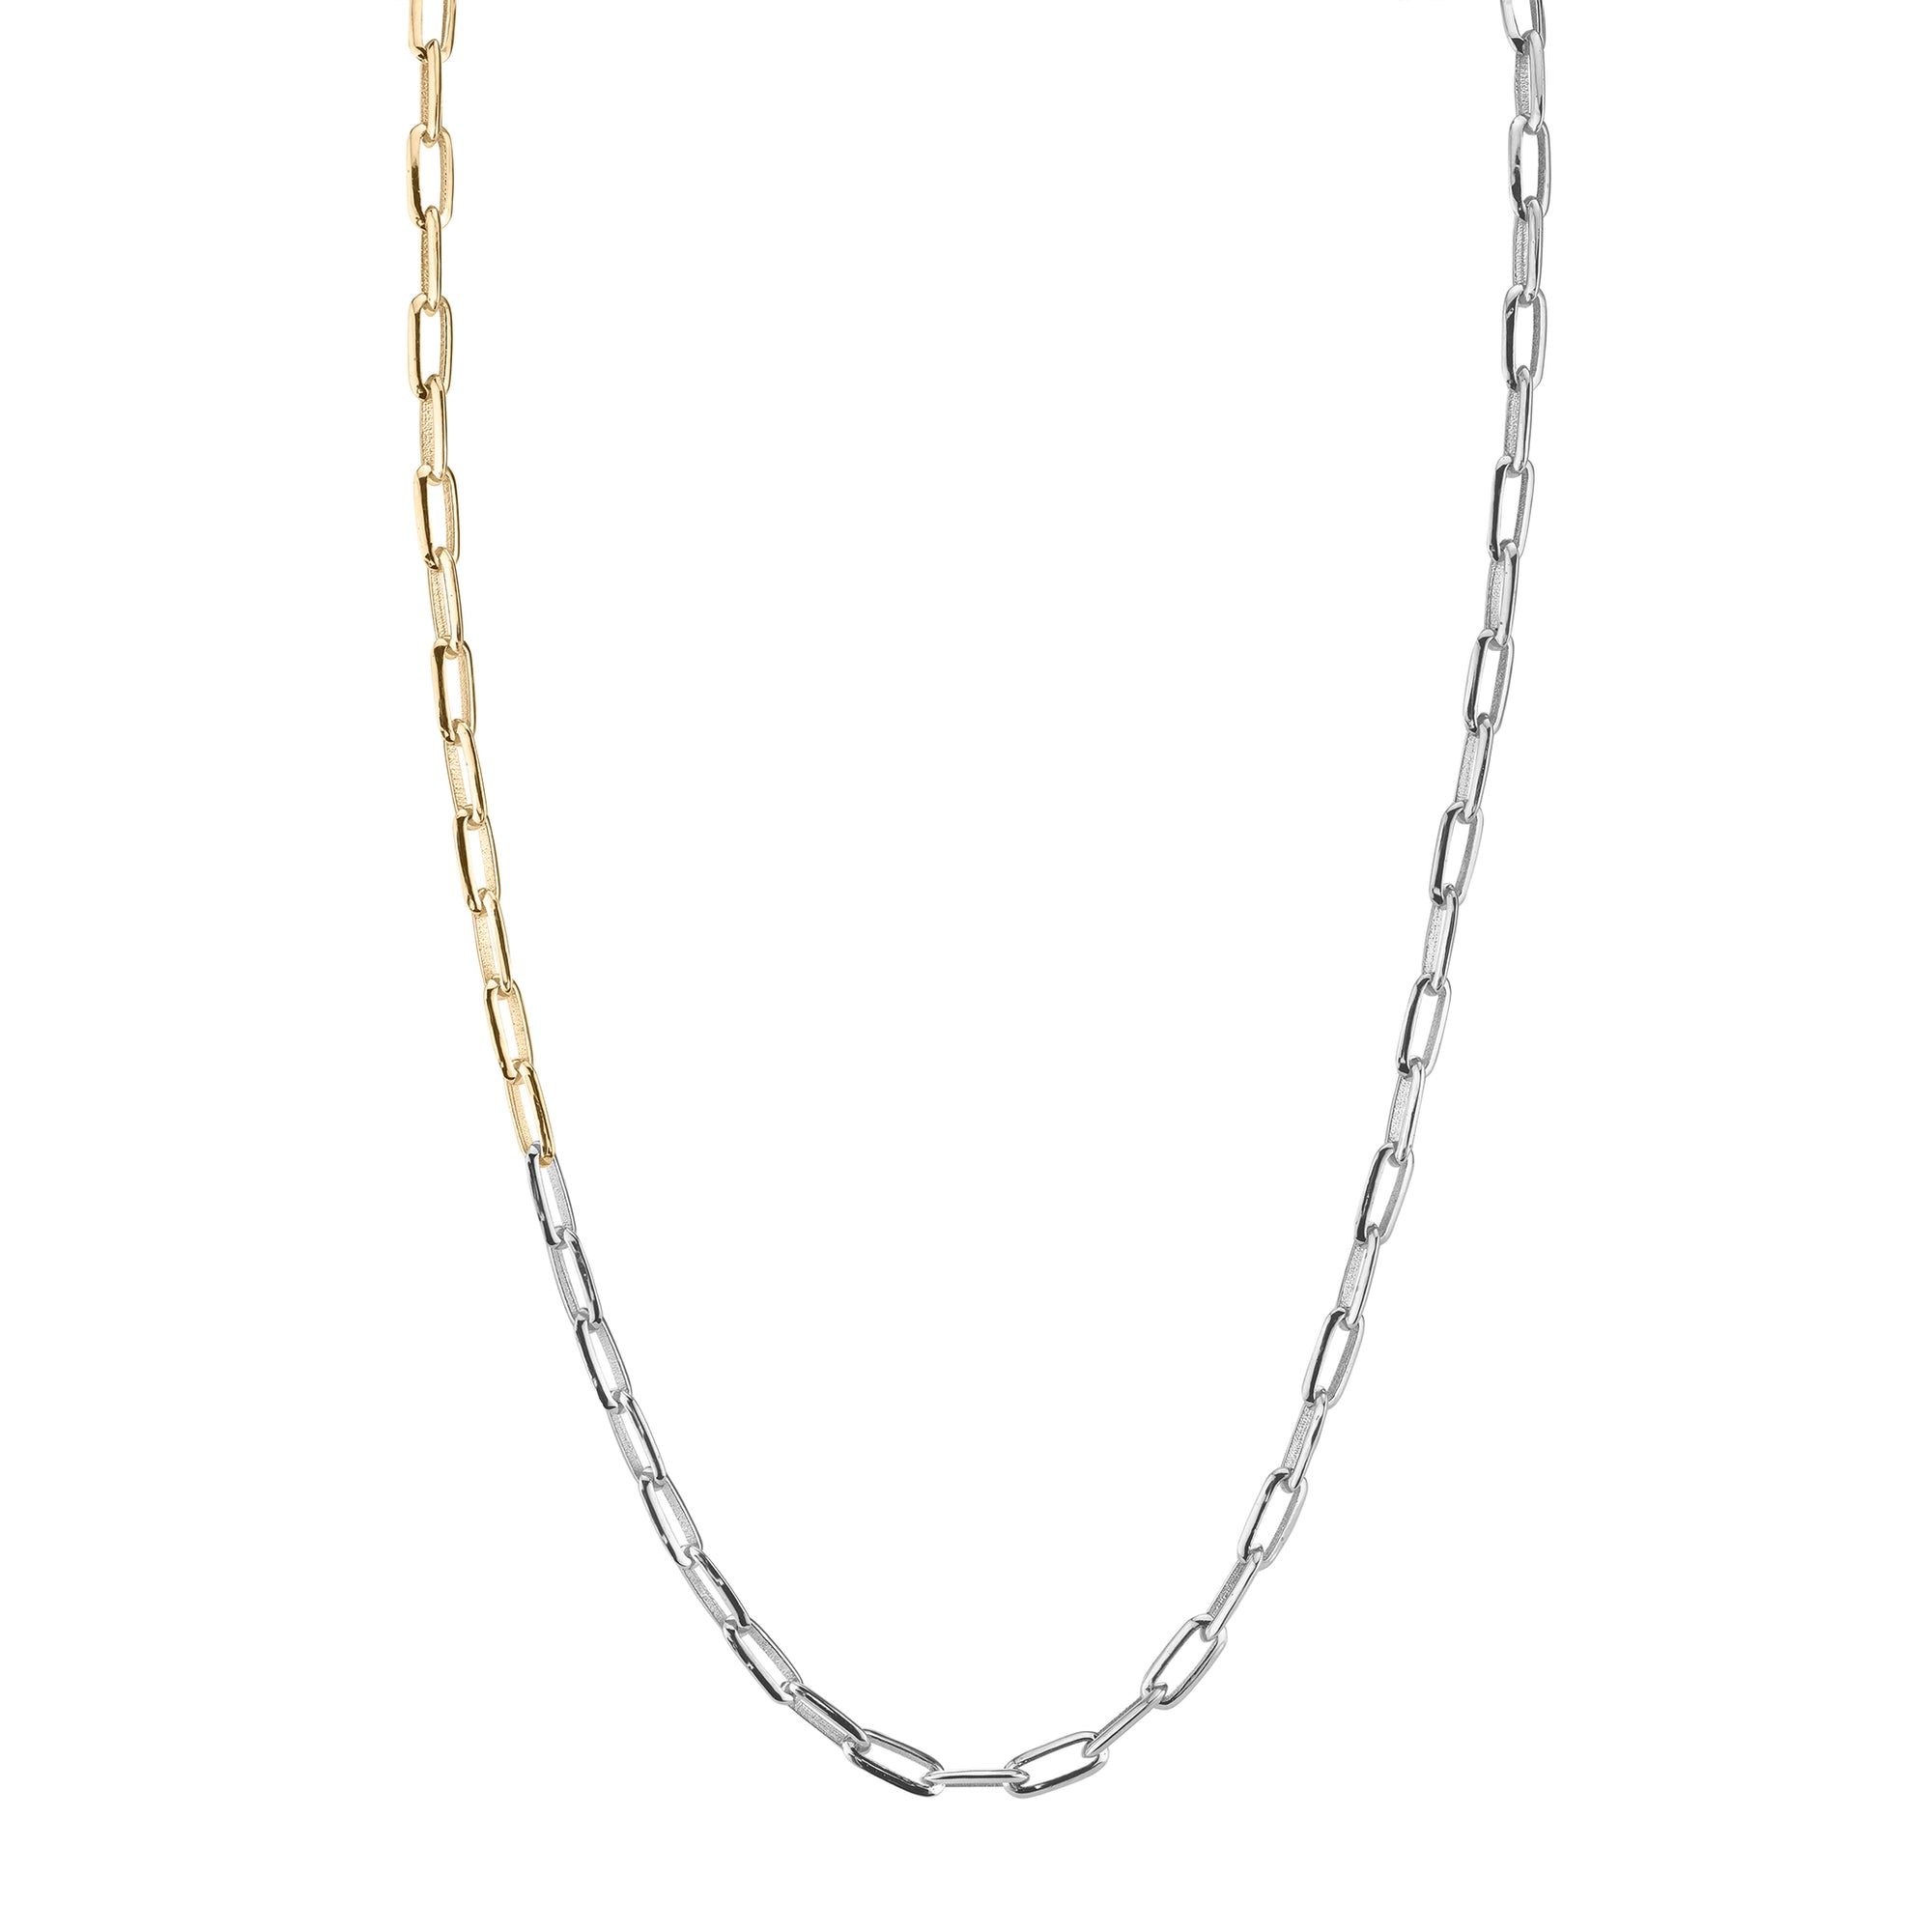 Silver and Gold Oval Link